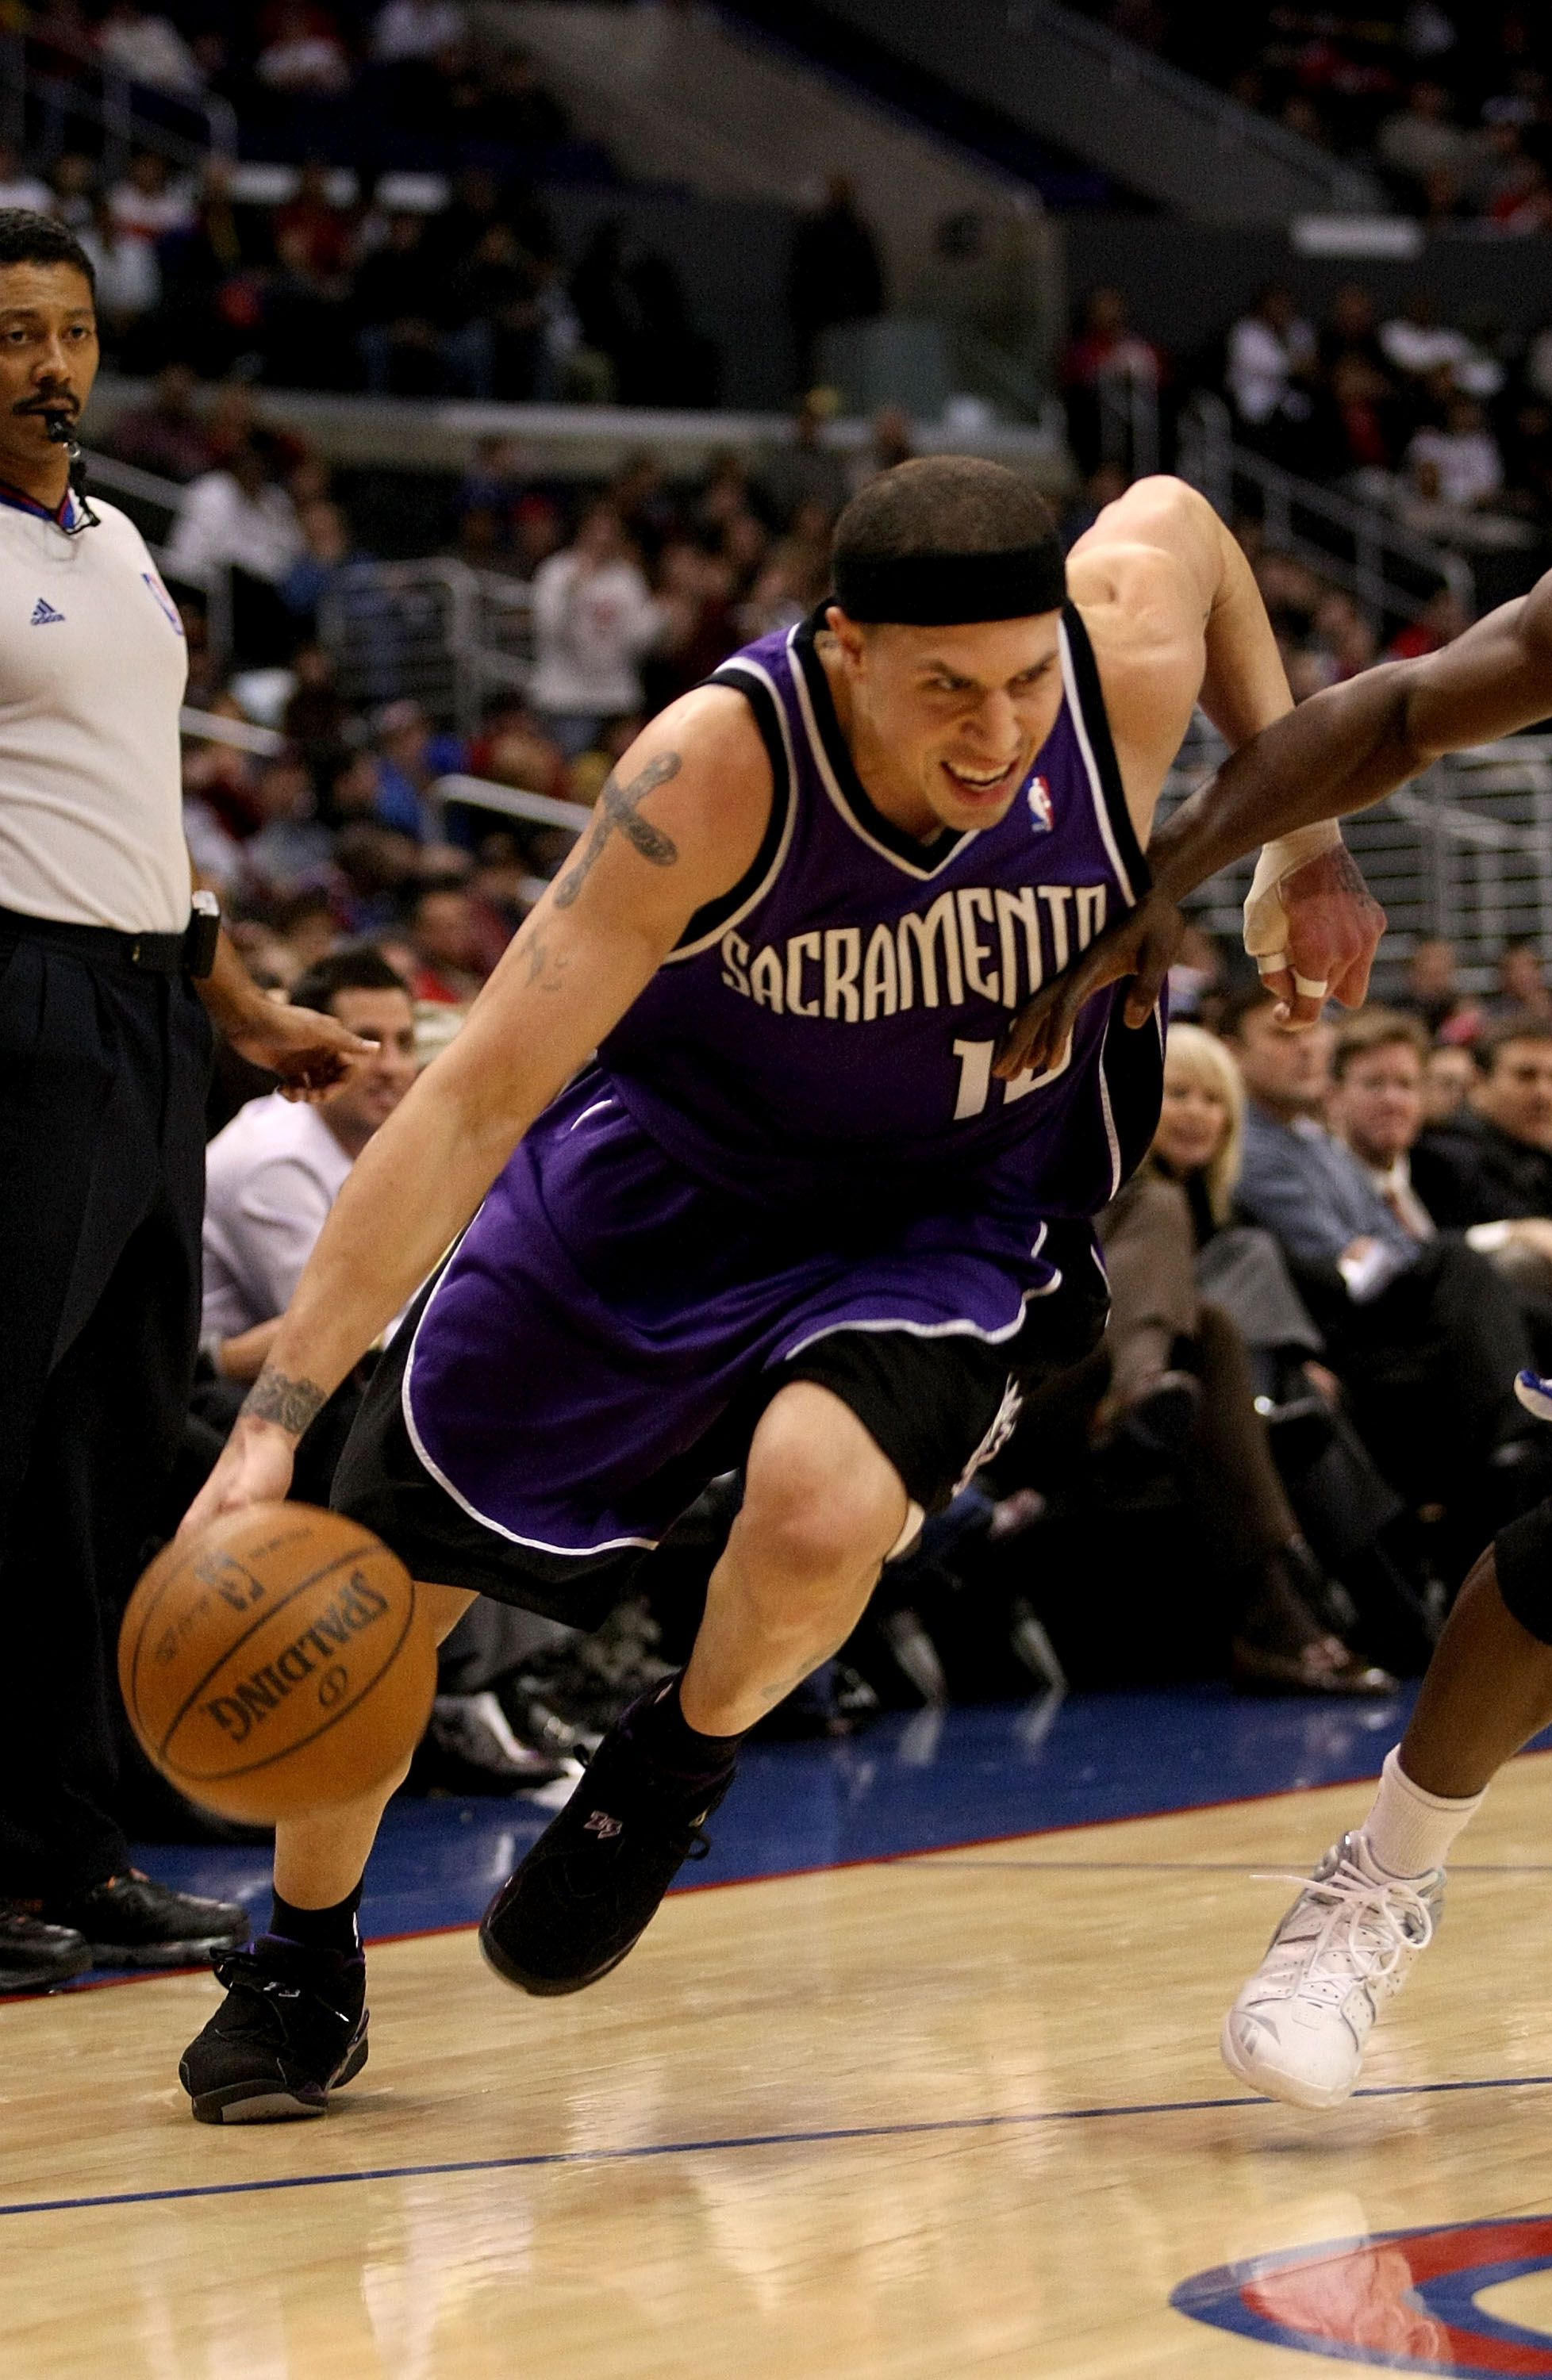 LOS ANGELES - JANUARY 23:    Mike Bibby #10 of the Sacramento Kings drives against the Los Angeles Clippers on January 23, 2008 at Staples Center in Los Angeles, California. NOTE TO USER: User expressly acknowledges and agrees that, by downloading and/or